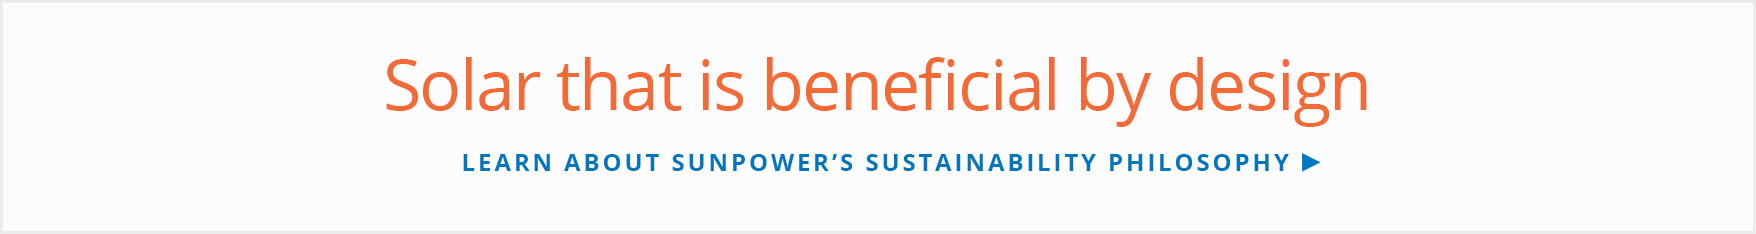 "Read about SunPower's ""Beneficial by Design"" philosophy"